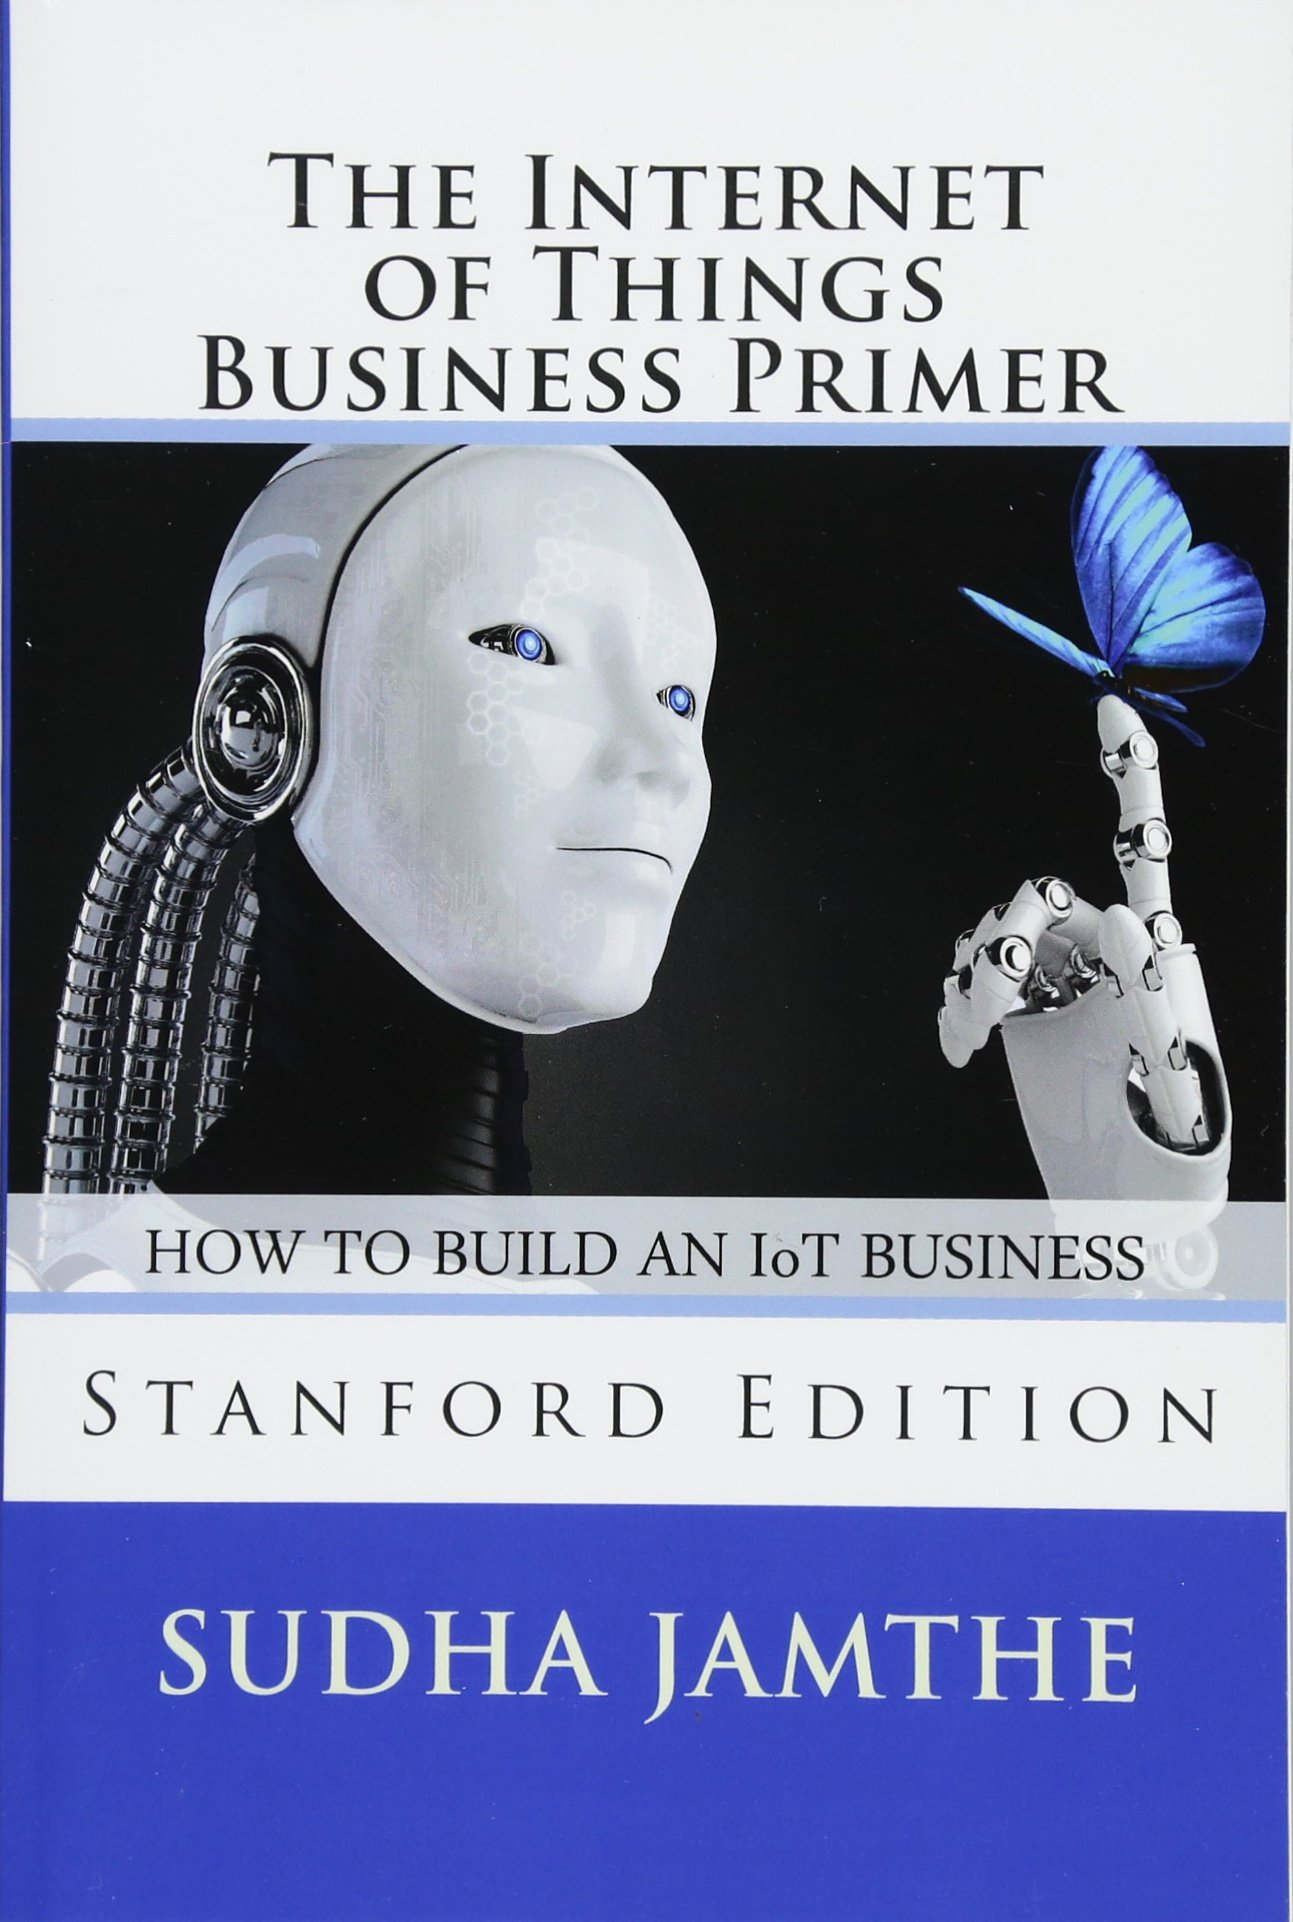 The Internet of Things Business Primer pdf